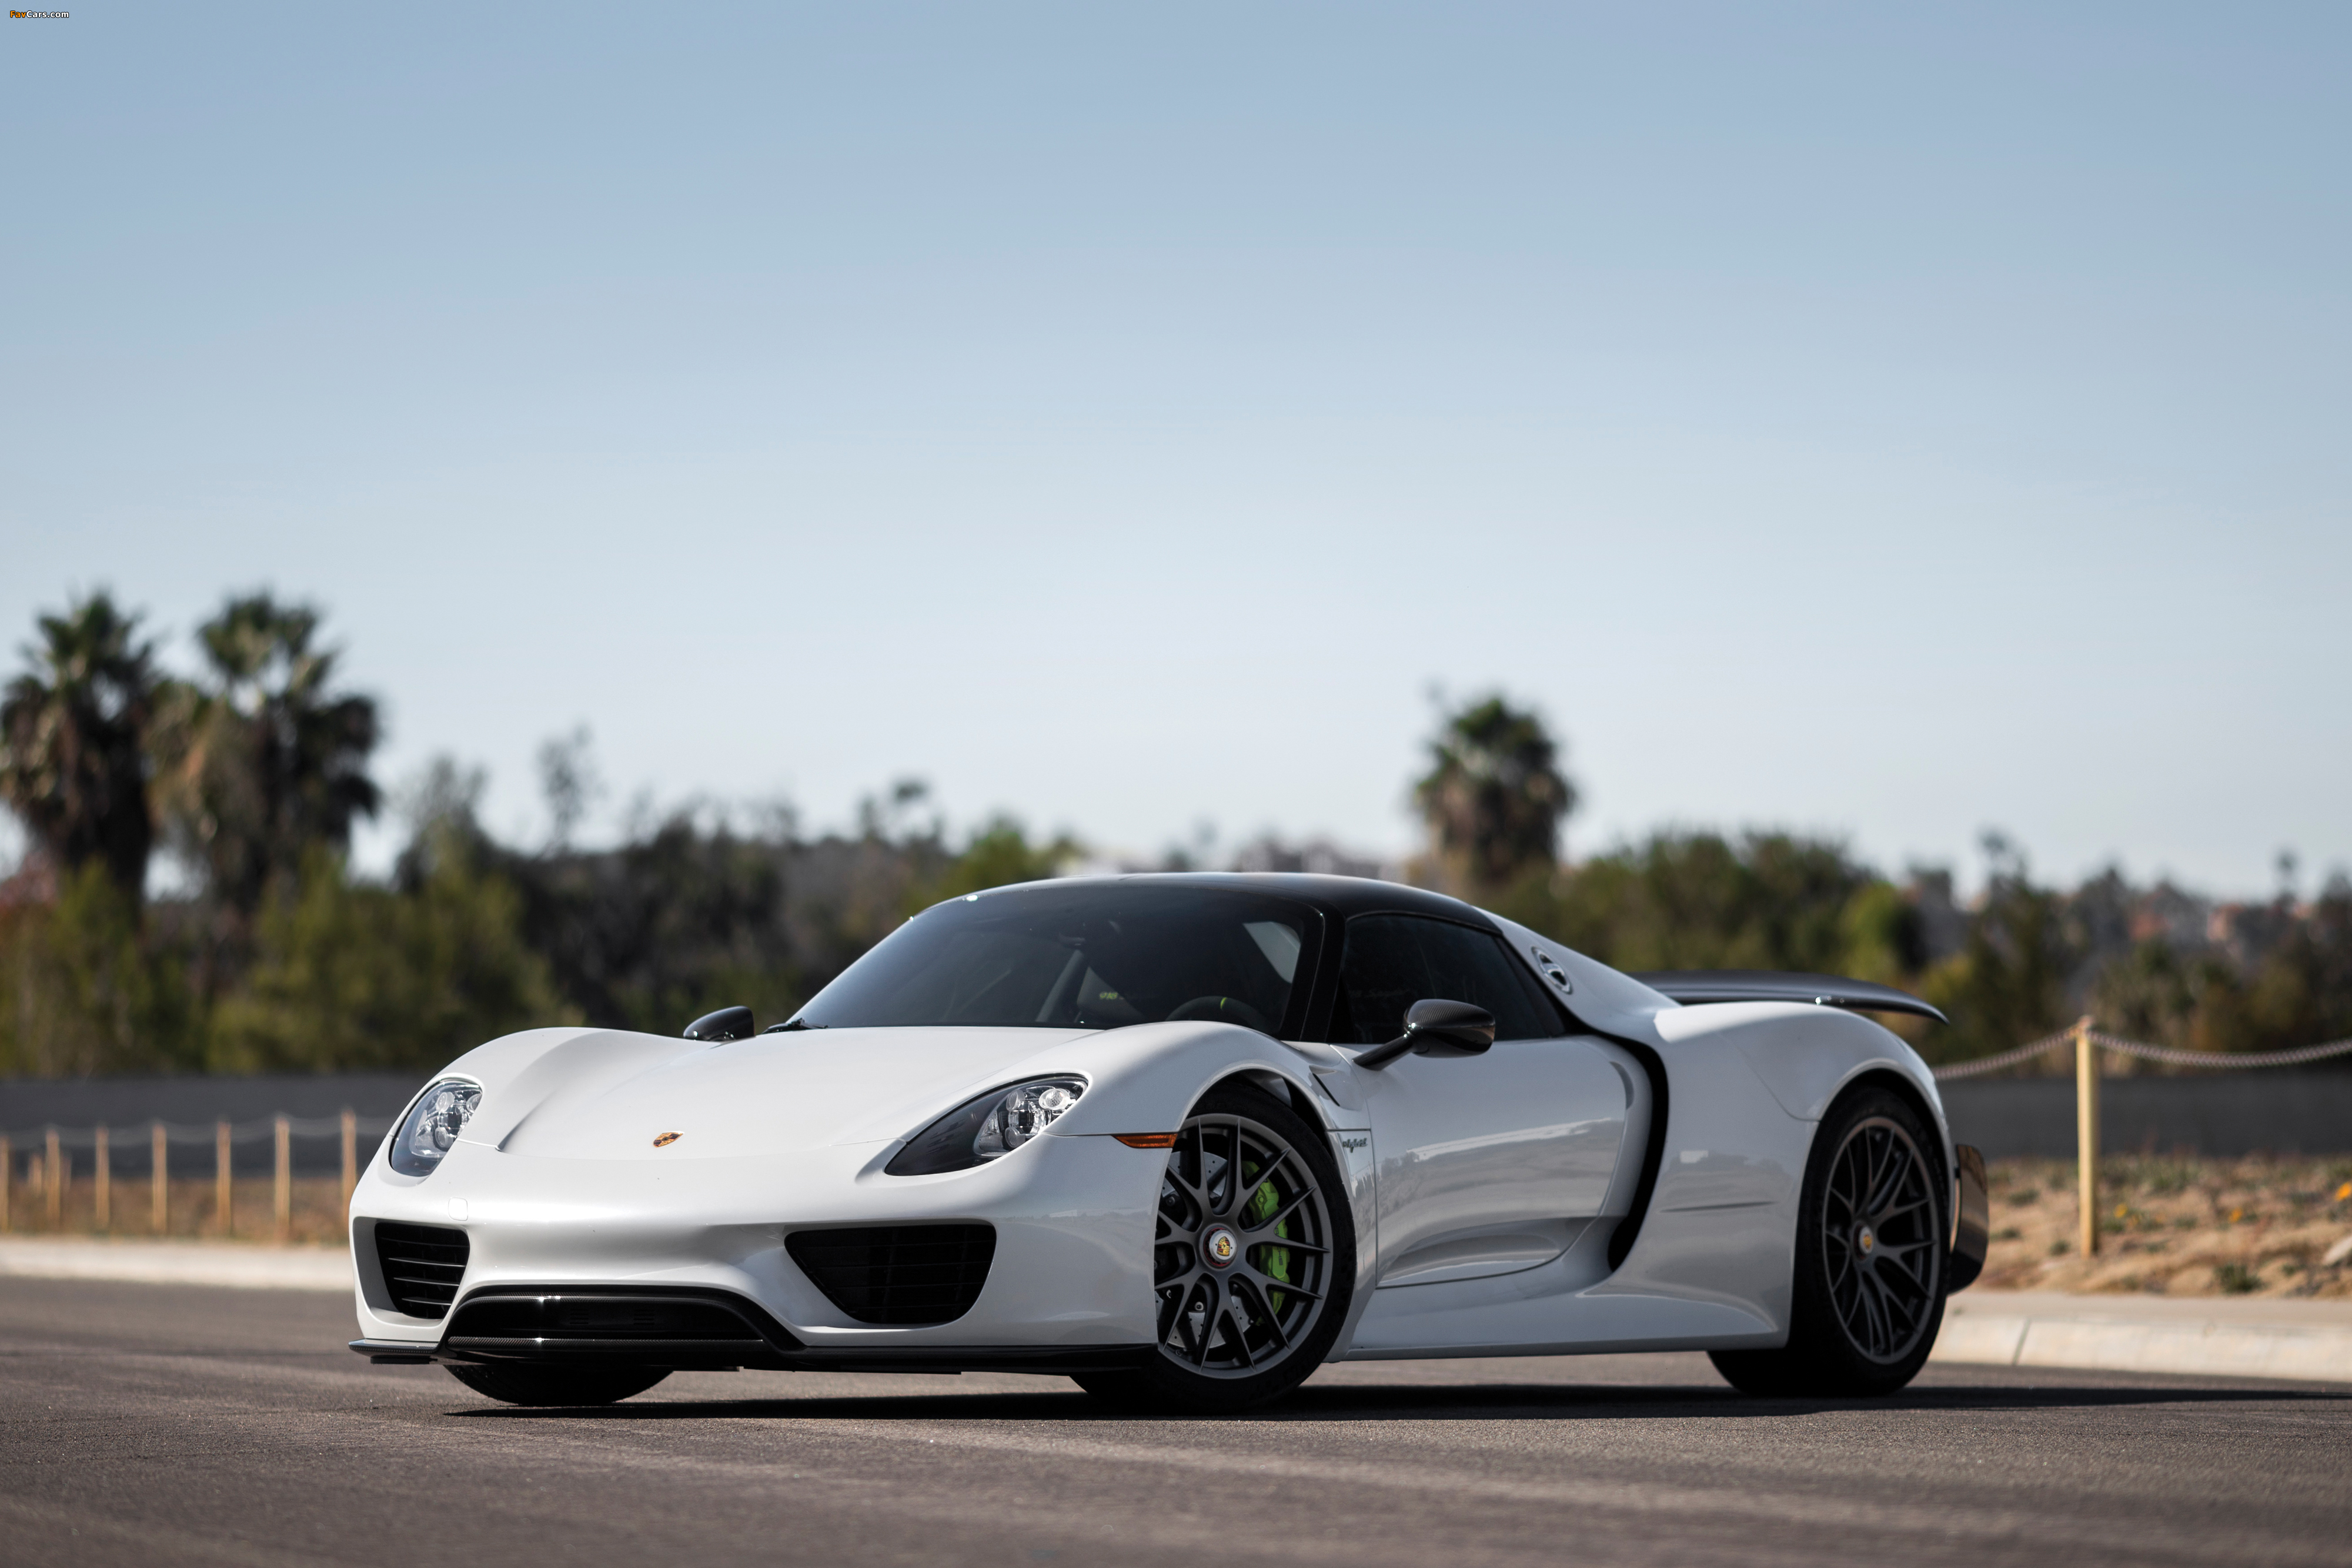 images of porsche 918 spyder weissach package us spec 2014 15 4000x2667. Black Bedroom Furniture Sets. Home Design Ideas